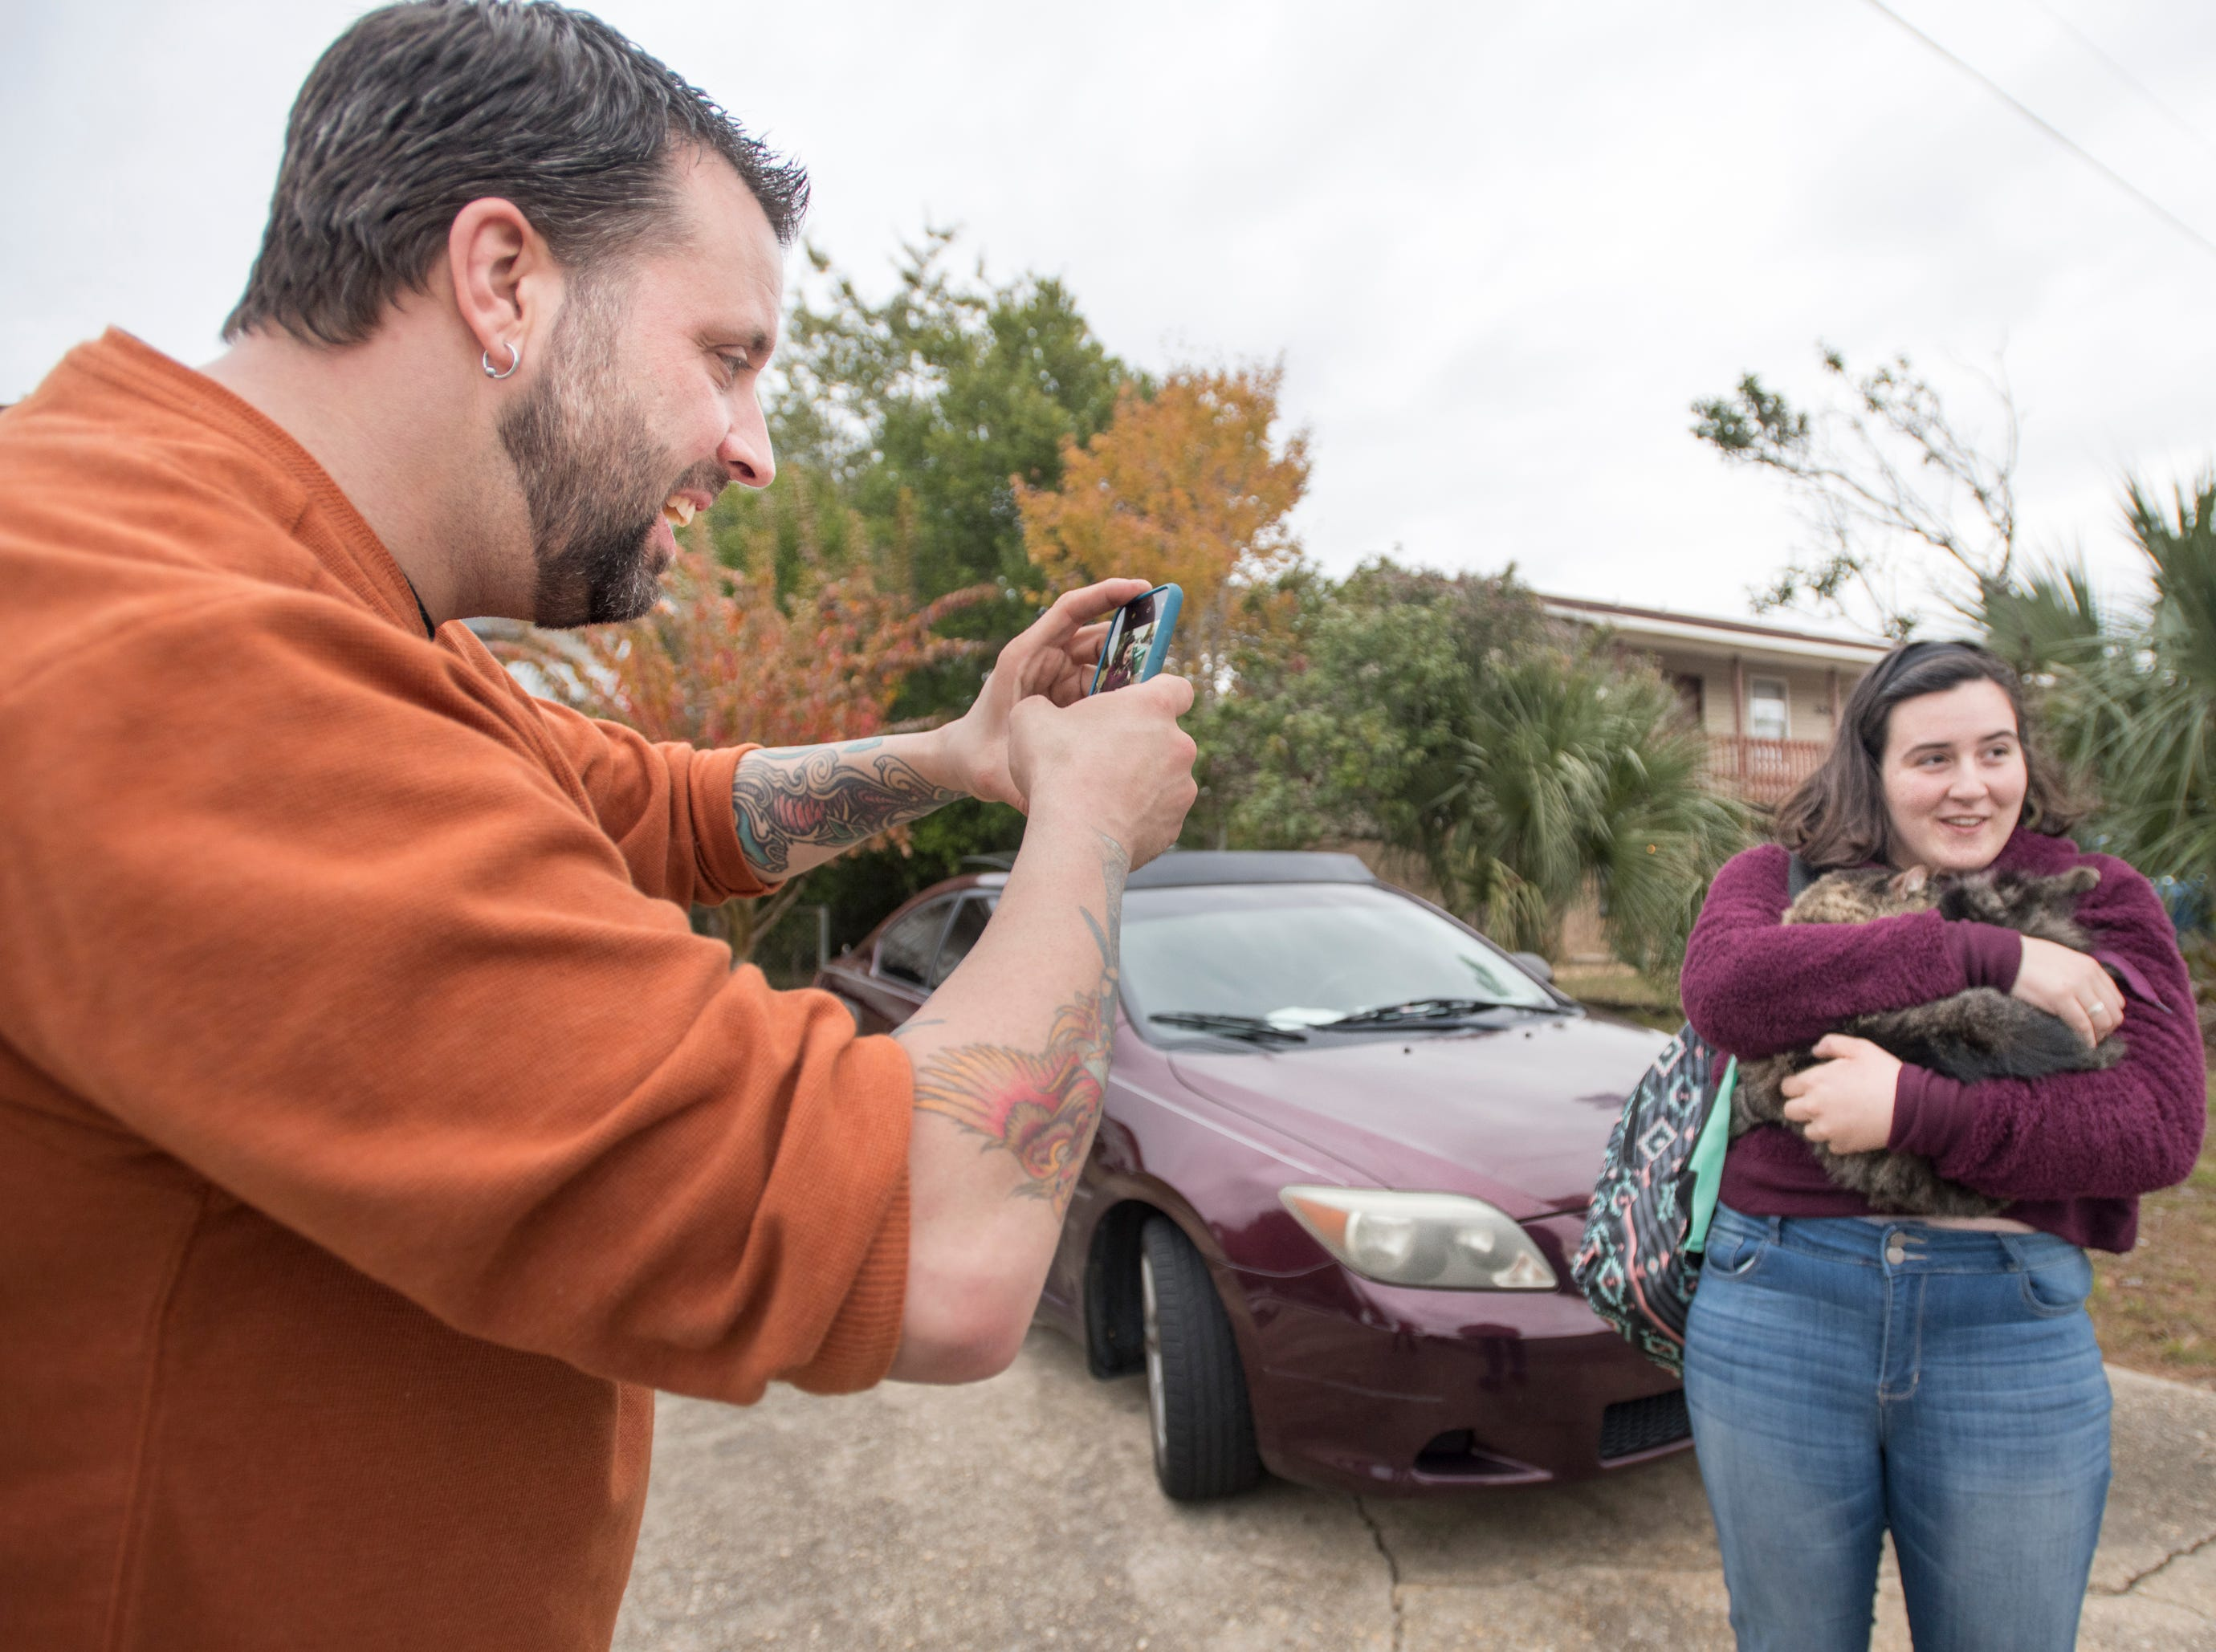 Ryan Ward snaps a photo of his daughter Chloe, 16, cuddling their cat Sokka after coming home from school in Gulf Breeze on Thursday, November 29, 2018.  Sokka, who has been missing since a fire destroyed the Ward apartment, was found earlier in the day by Ryan when he stopped by to search for him among the ruin.